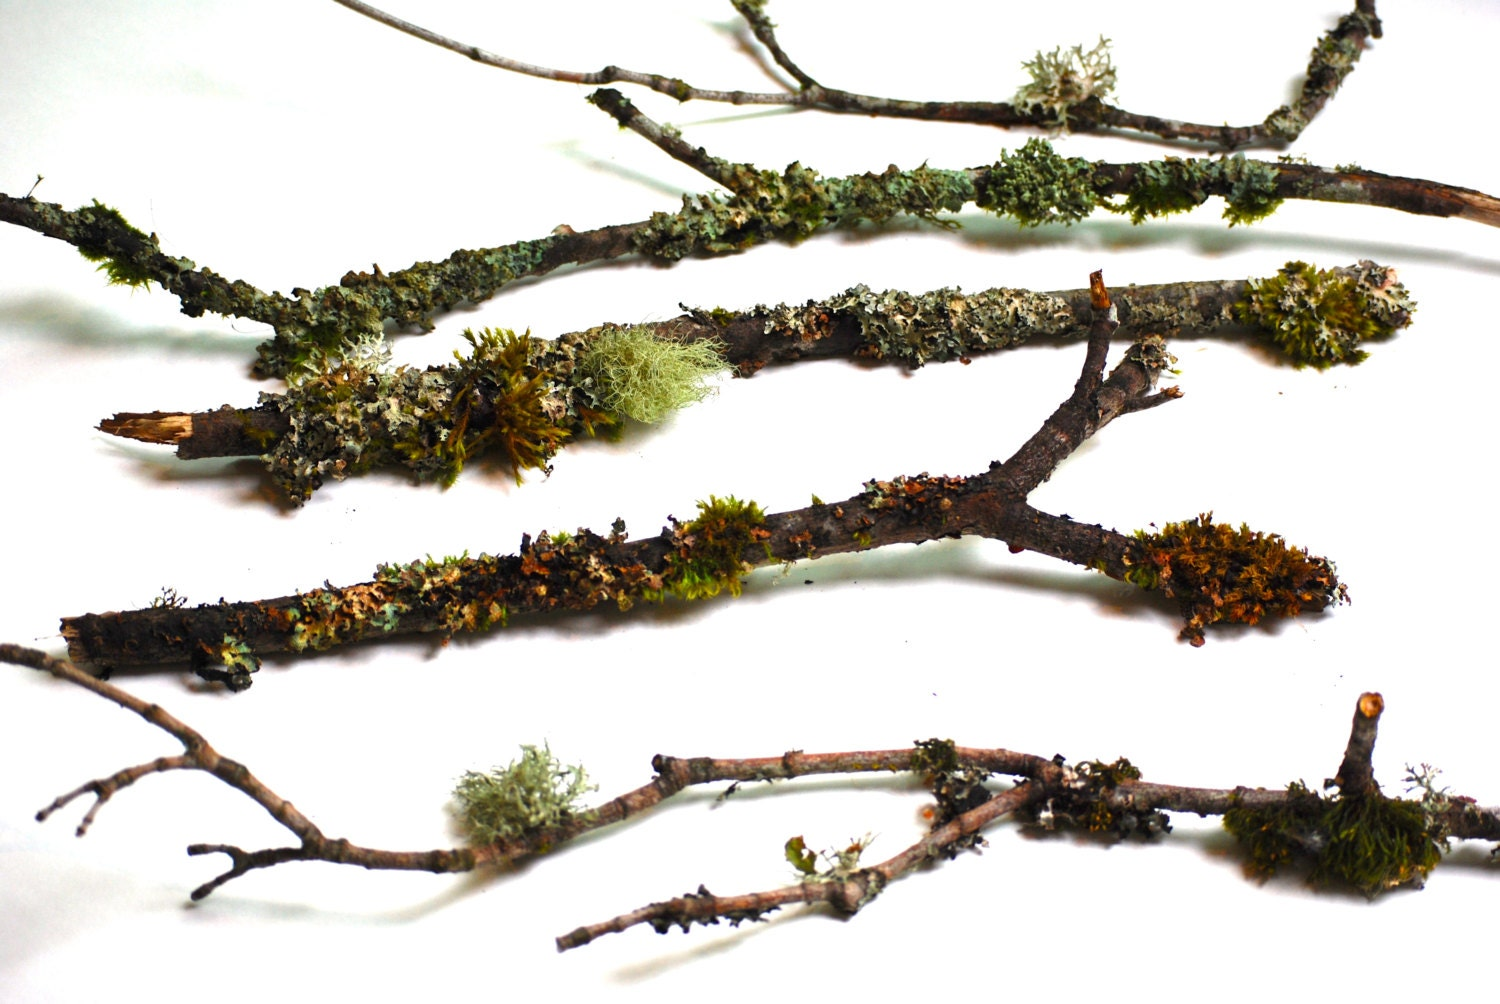 5 Branches & Twigs Covered in Natural Lichen and Moss, Bonsai Rustic ...